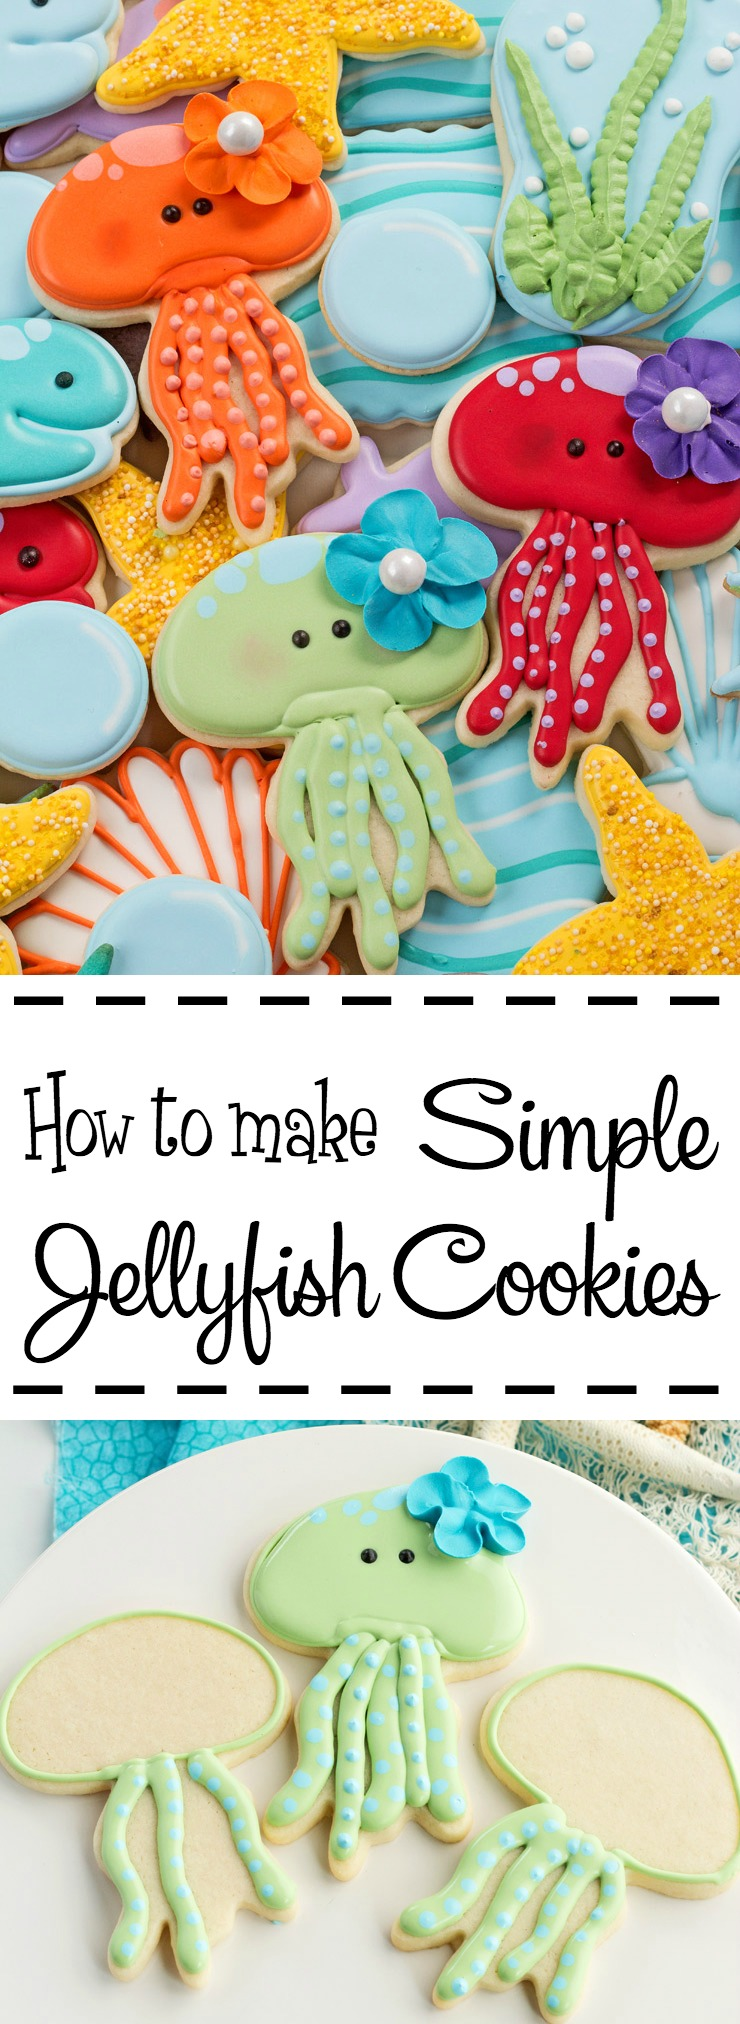 How to Make Simple Jellyfish Cookies with a Video | The Bearfoot Baker